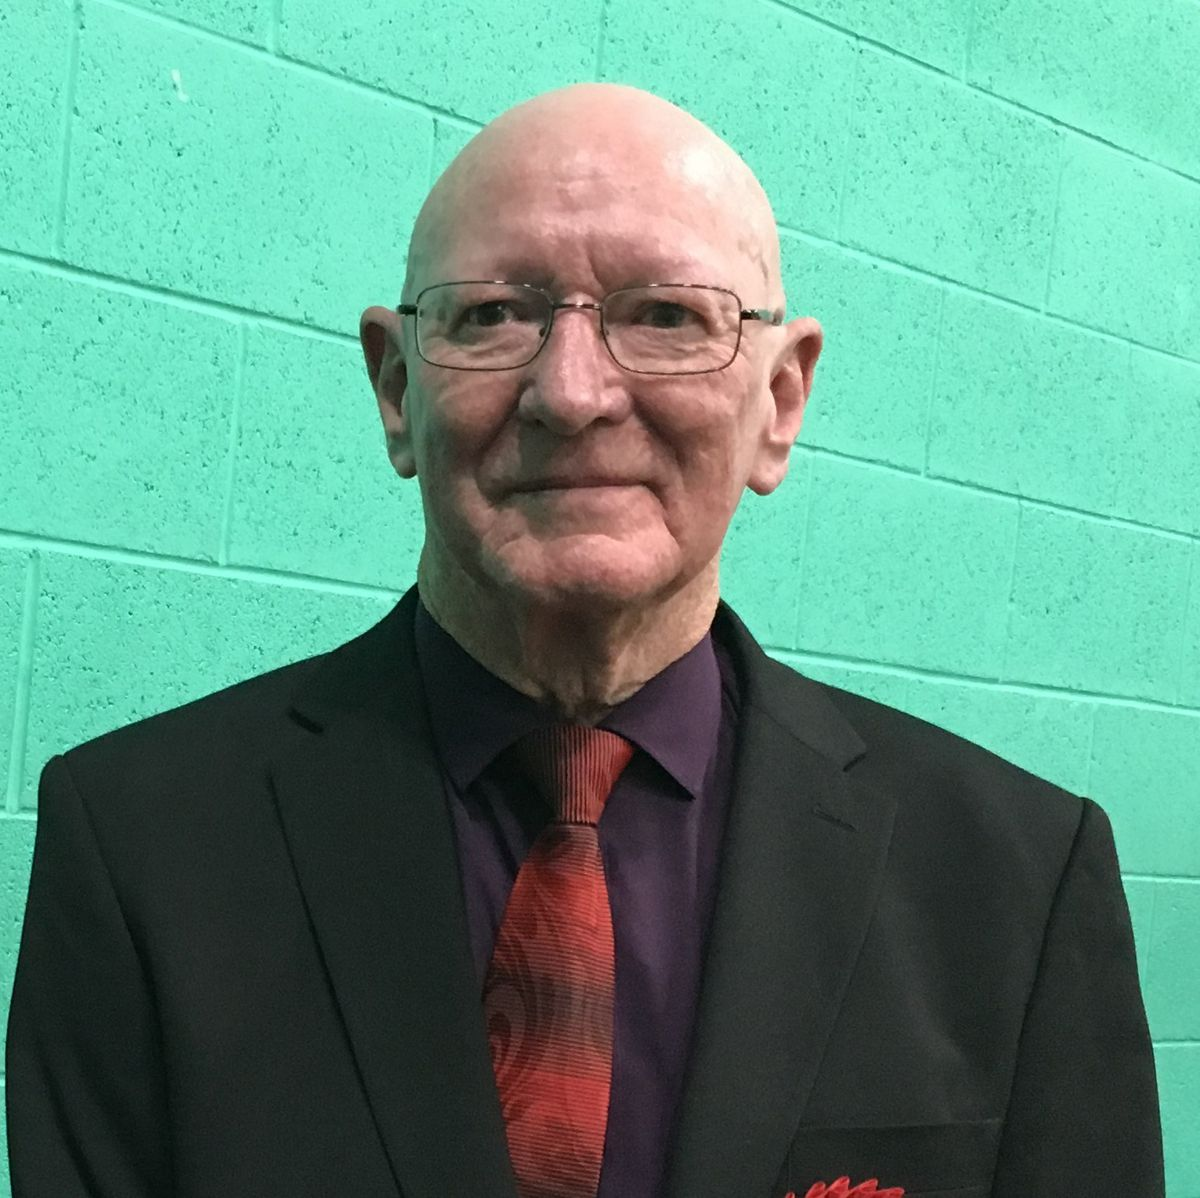 Councillor Tony Nixon